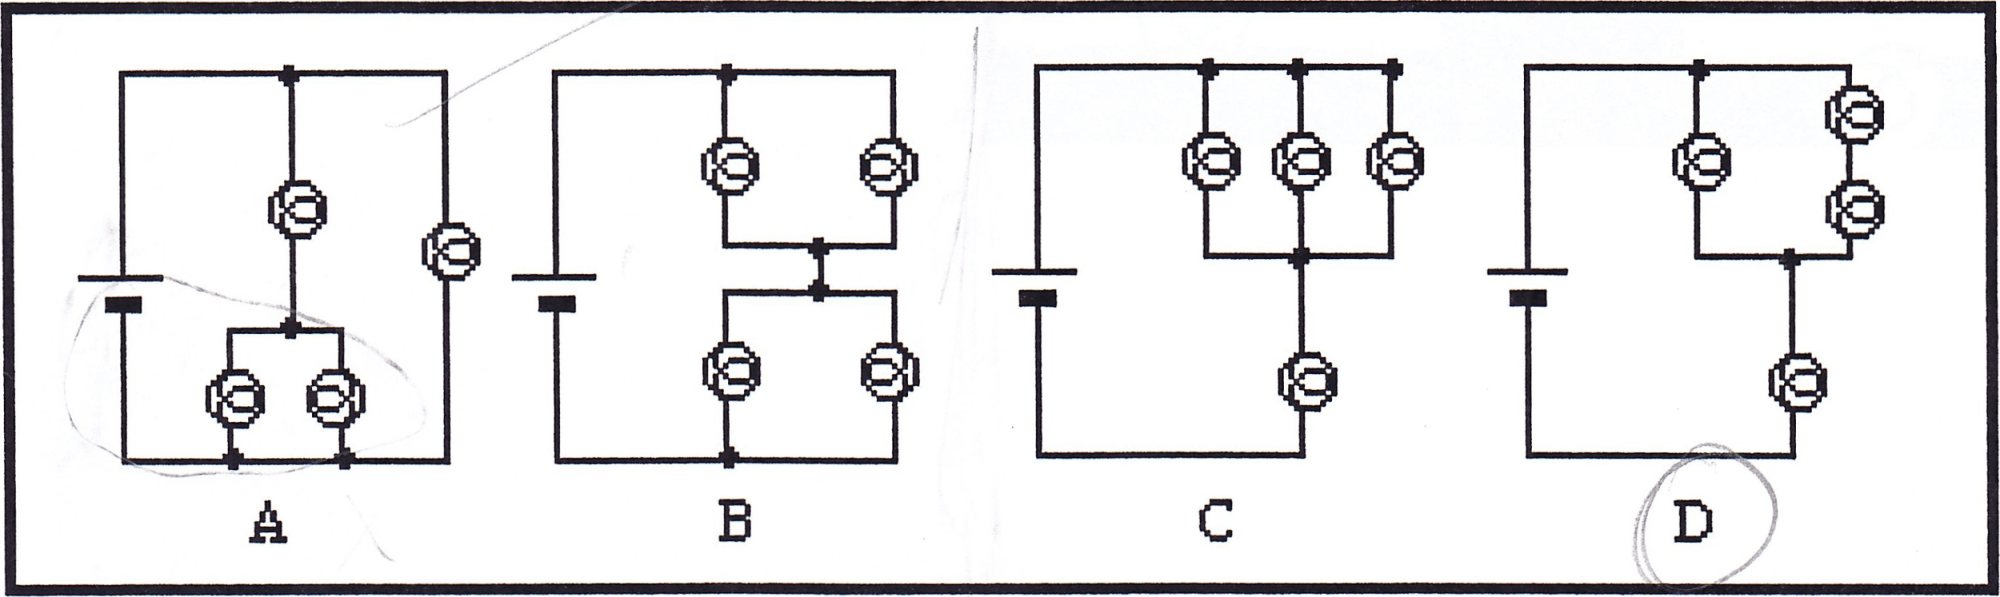 hight resolution of messy wiring diagram wiring diagram center messy wiring diagram